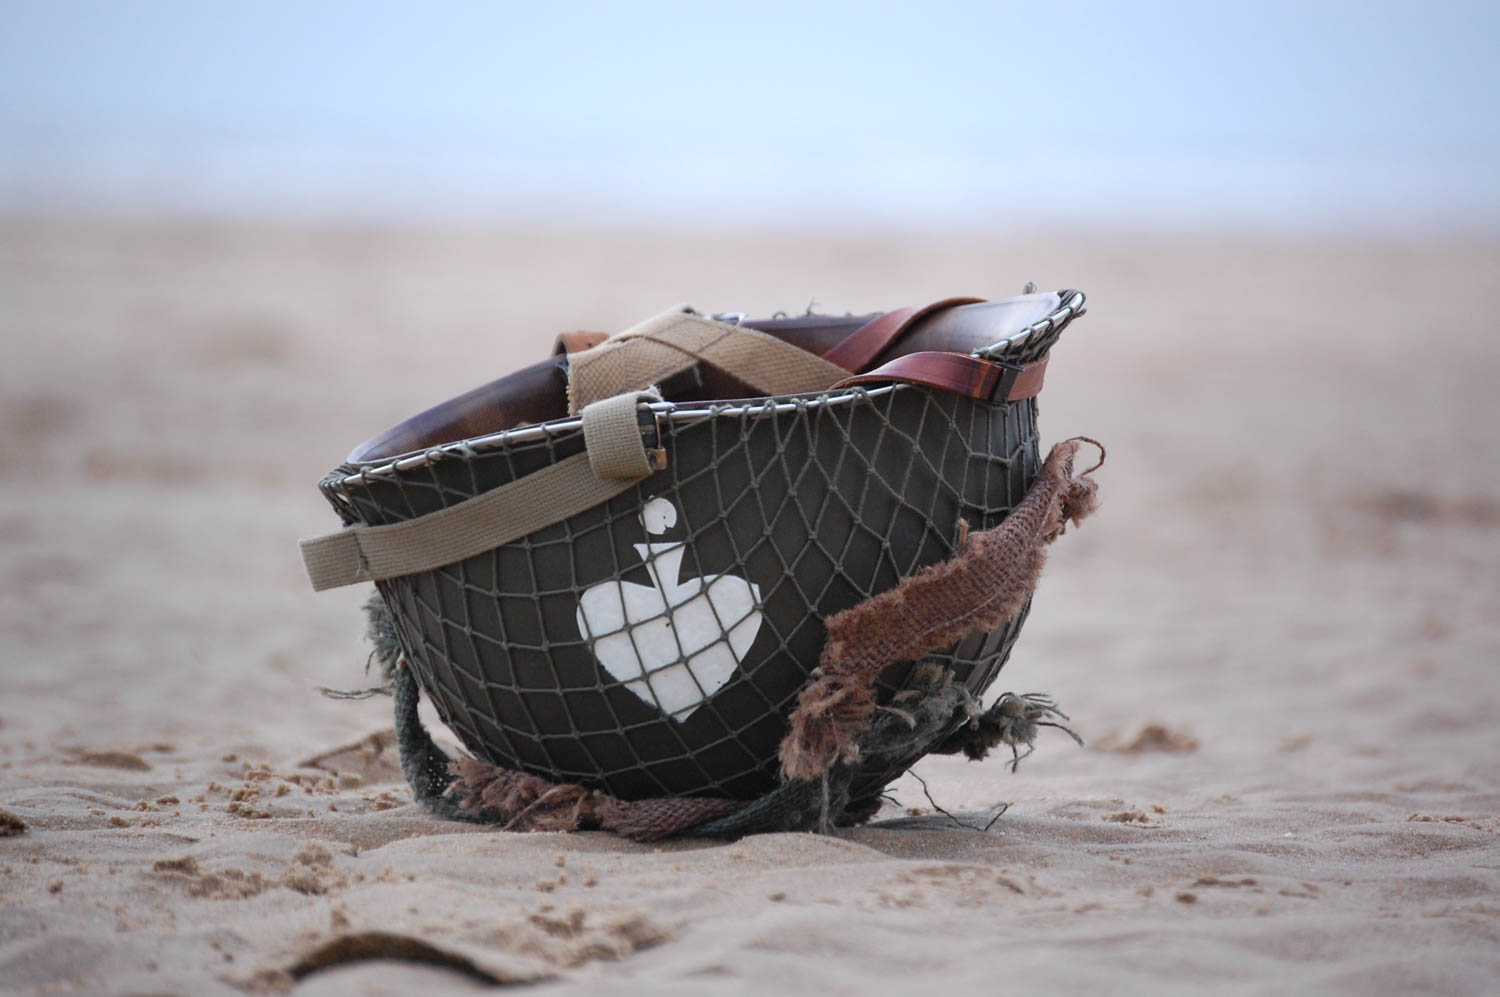 A U.S. Army helmet lies in the sand of Omaha Beach after a reenactment of the 29th Infantry's bloody assault of the beach on D-Day. Today the beach hosts millions of visitors per year interested in its wartime history, as well as hordes of French summer holiday sun-seekers.